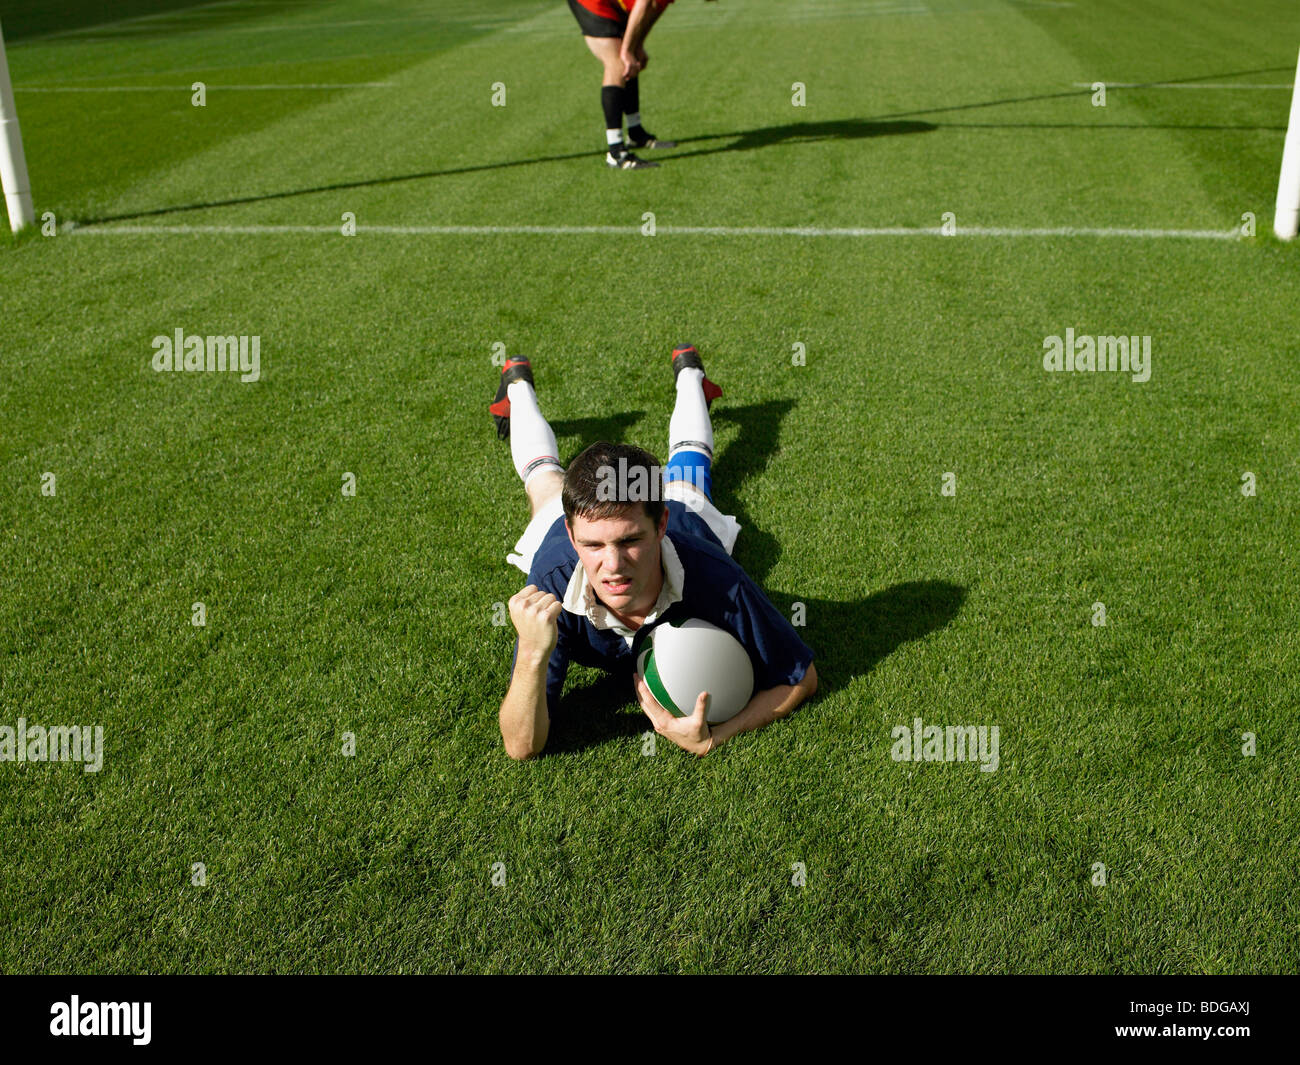 Rugby player scoring a try - Stock Image